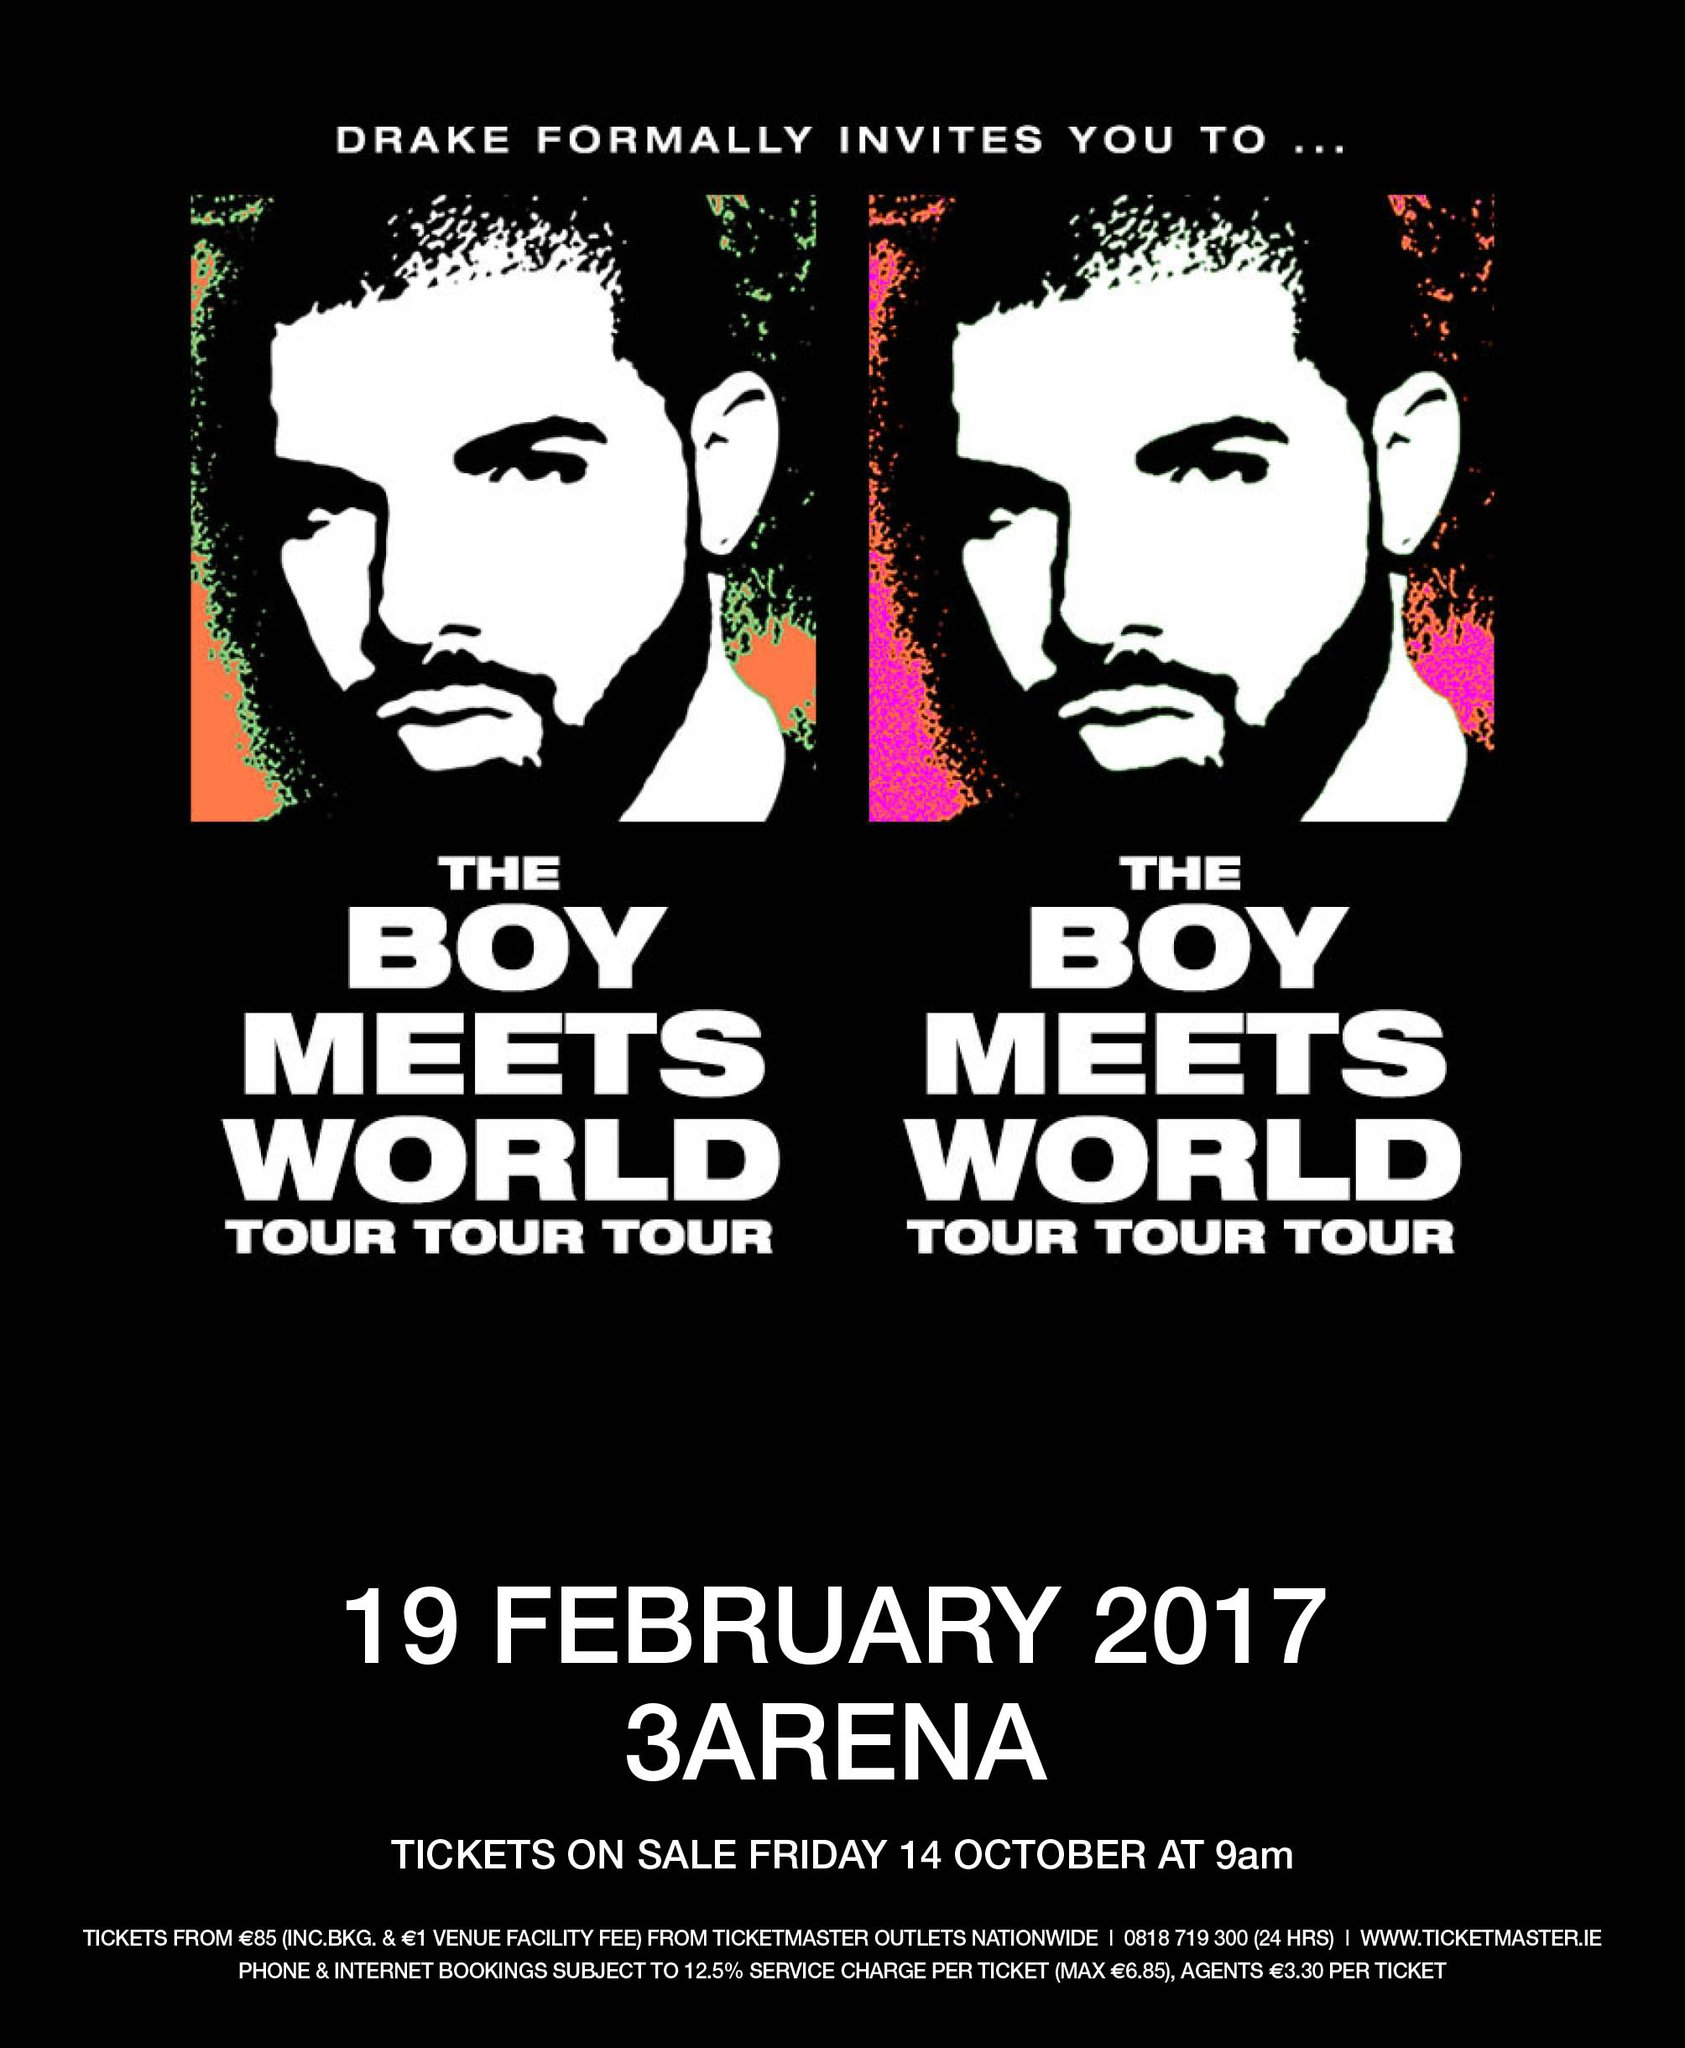 Drake has been known to bring out surprise guests on top of OVO's already stacked lineups, so you never know who you might see this year! In the past, he's brought out Kanye West, Rihanna, and Eminem, among many other distinguished friends. Tickets are expected to go fast, so make sure to secure yours as quickly as possible.